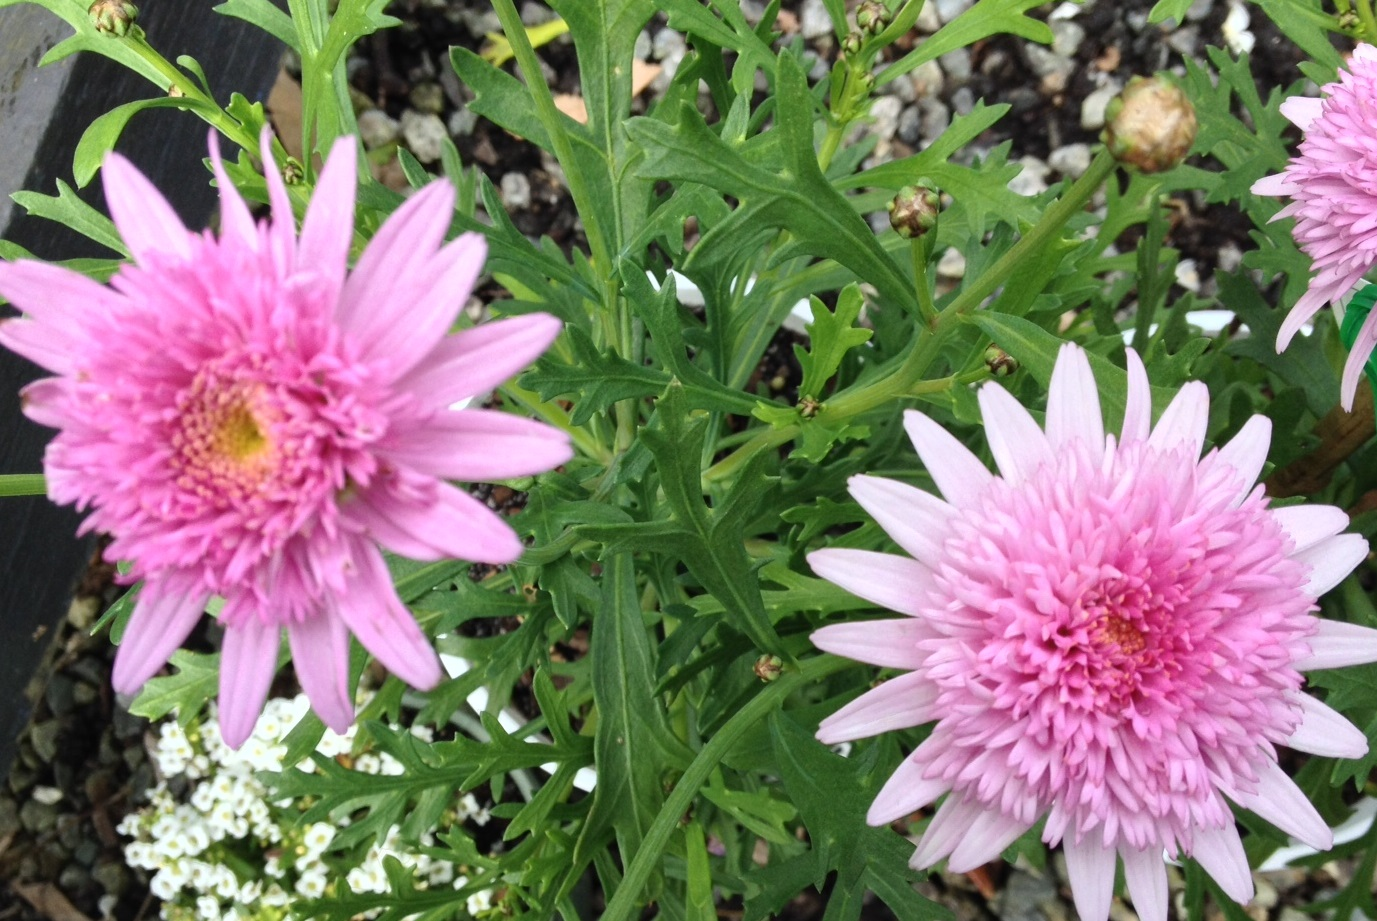 Chrysanthemum Double Pink Common Name Marguerite Or Paris Daisy